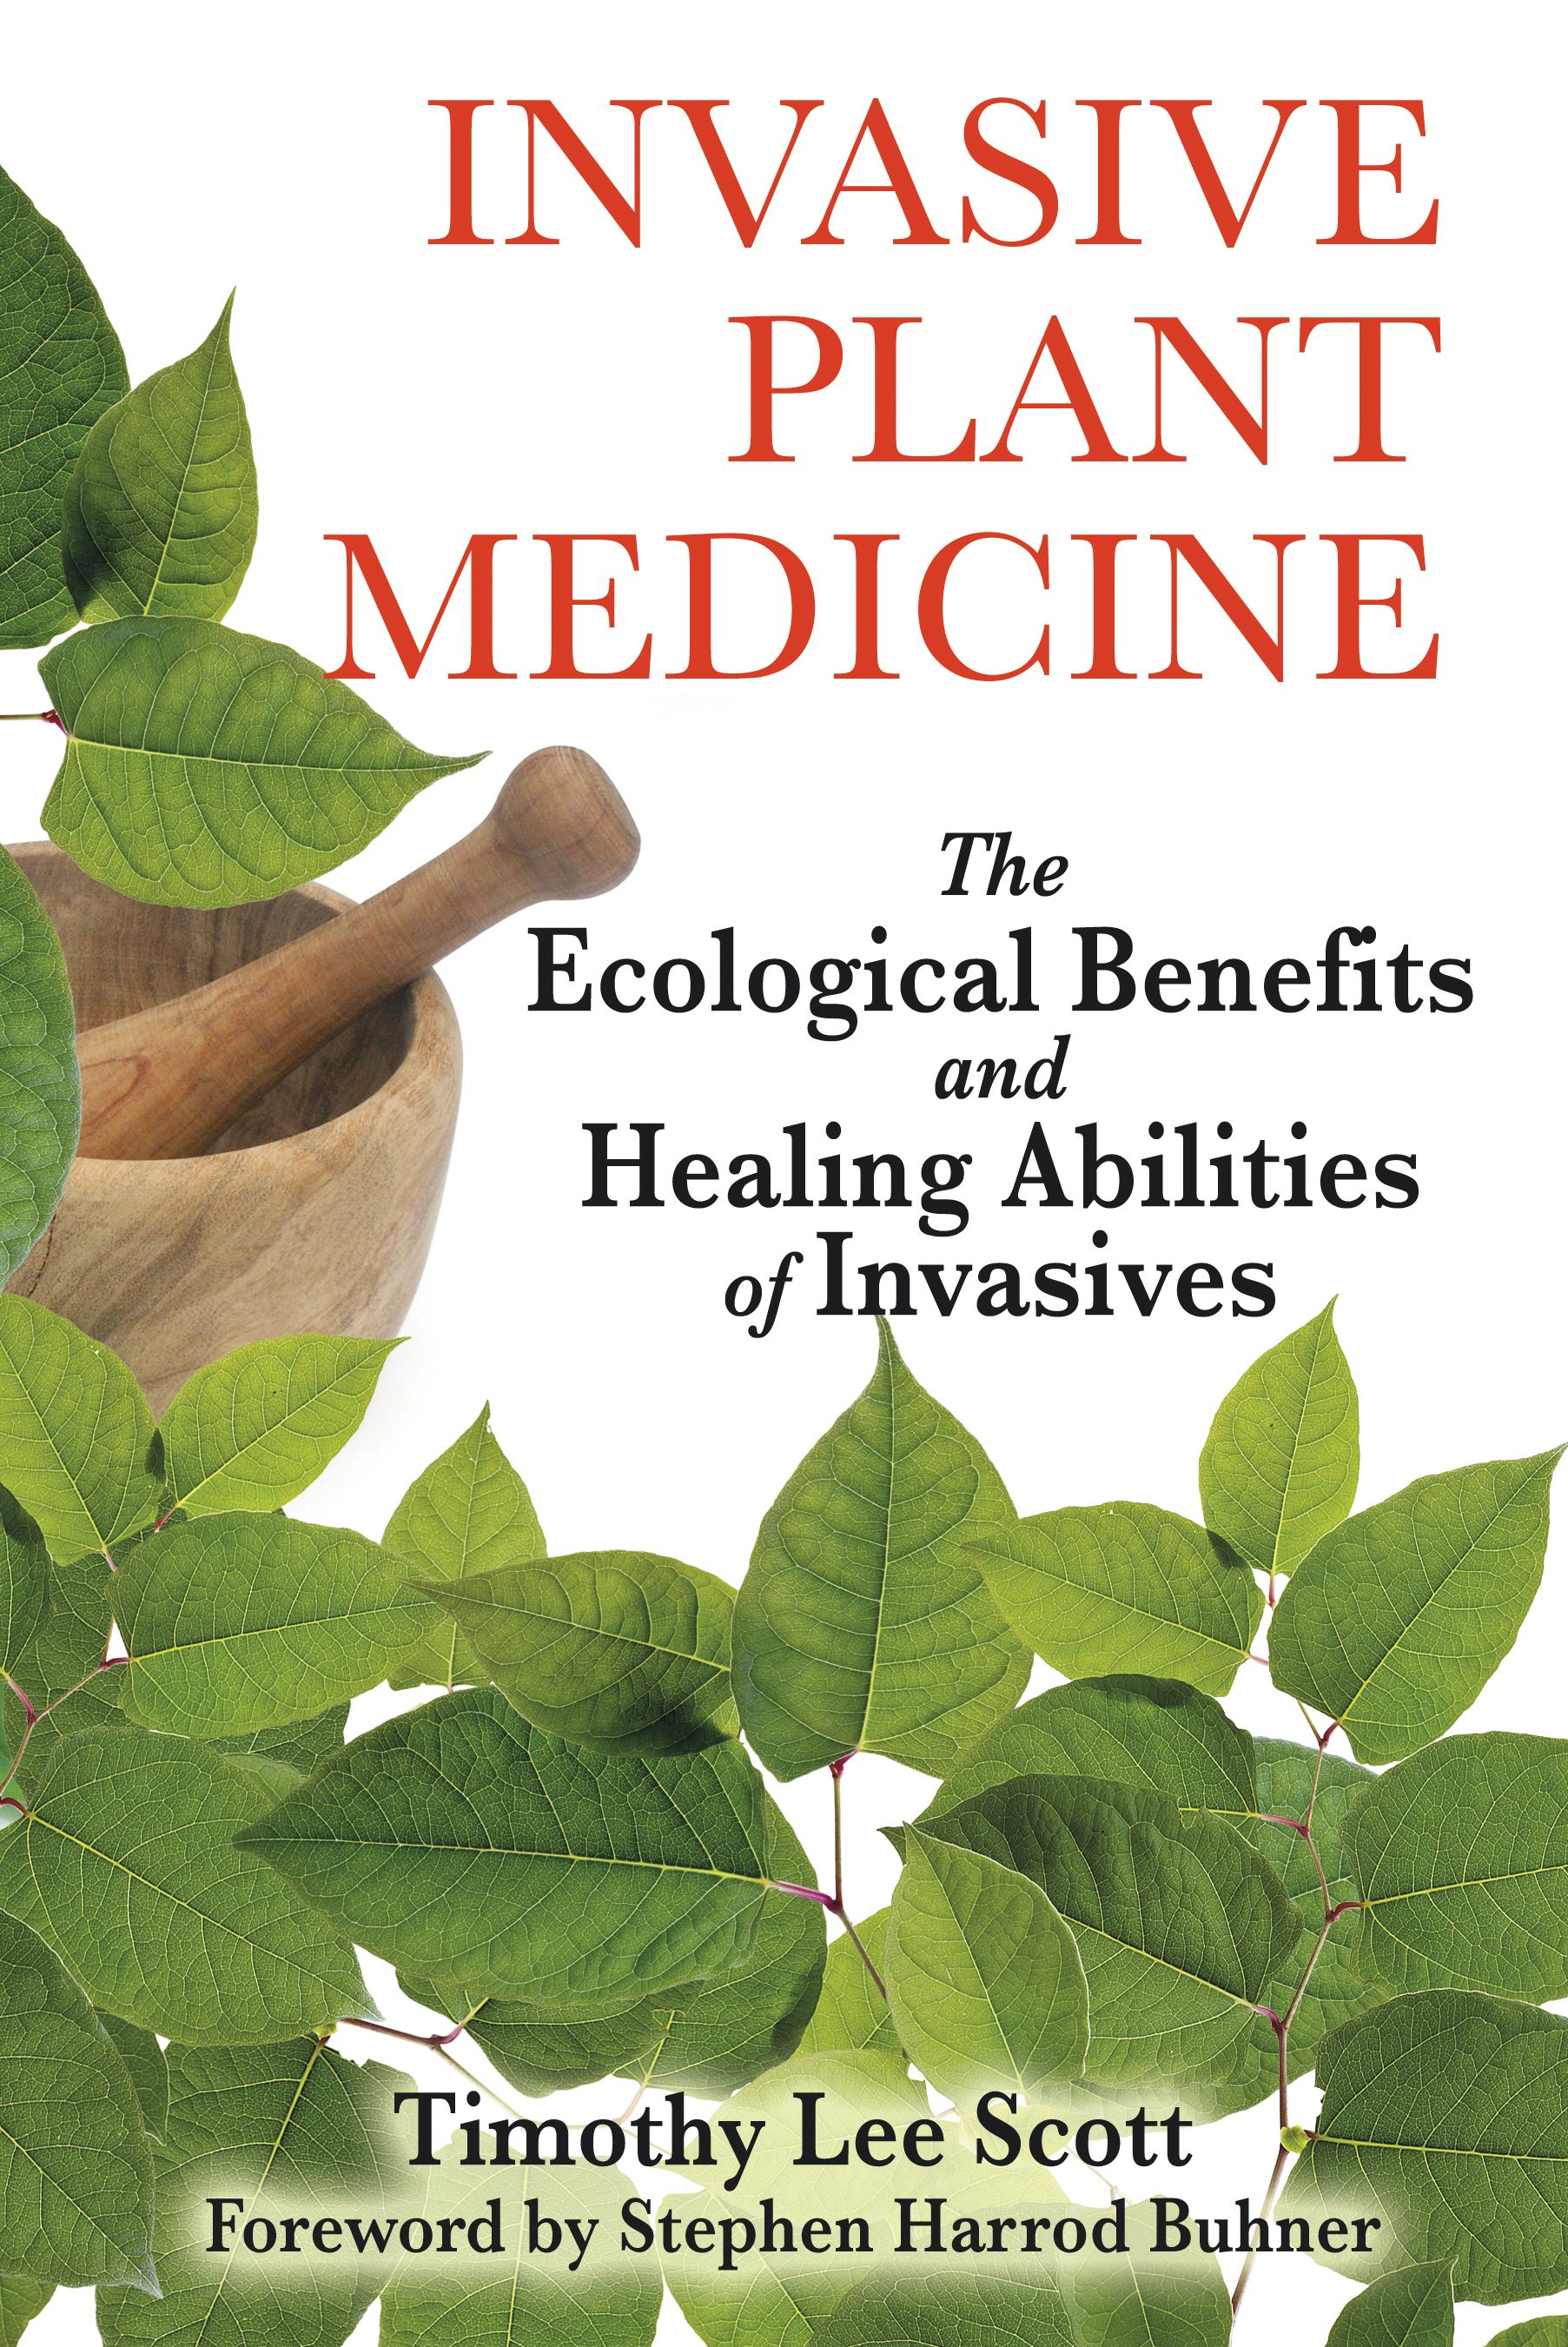 Invasive plant medicine 9781594773051 hr